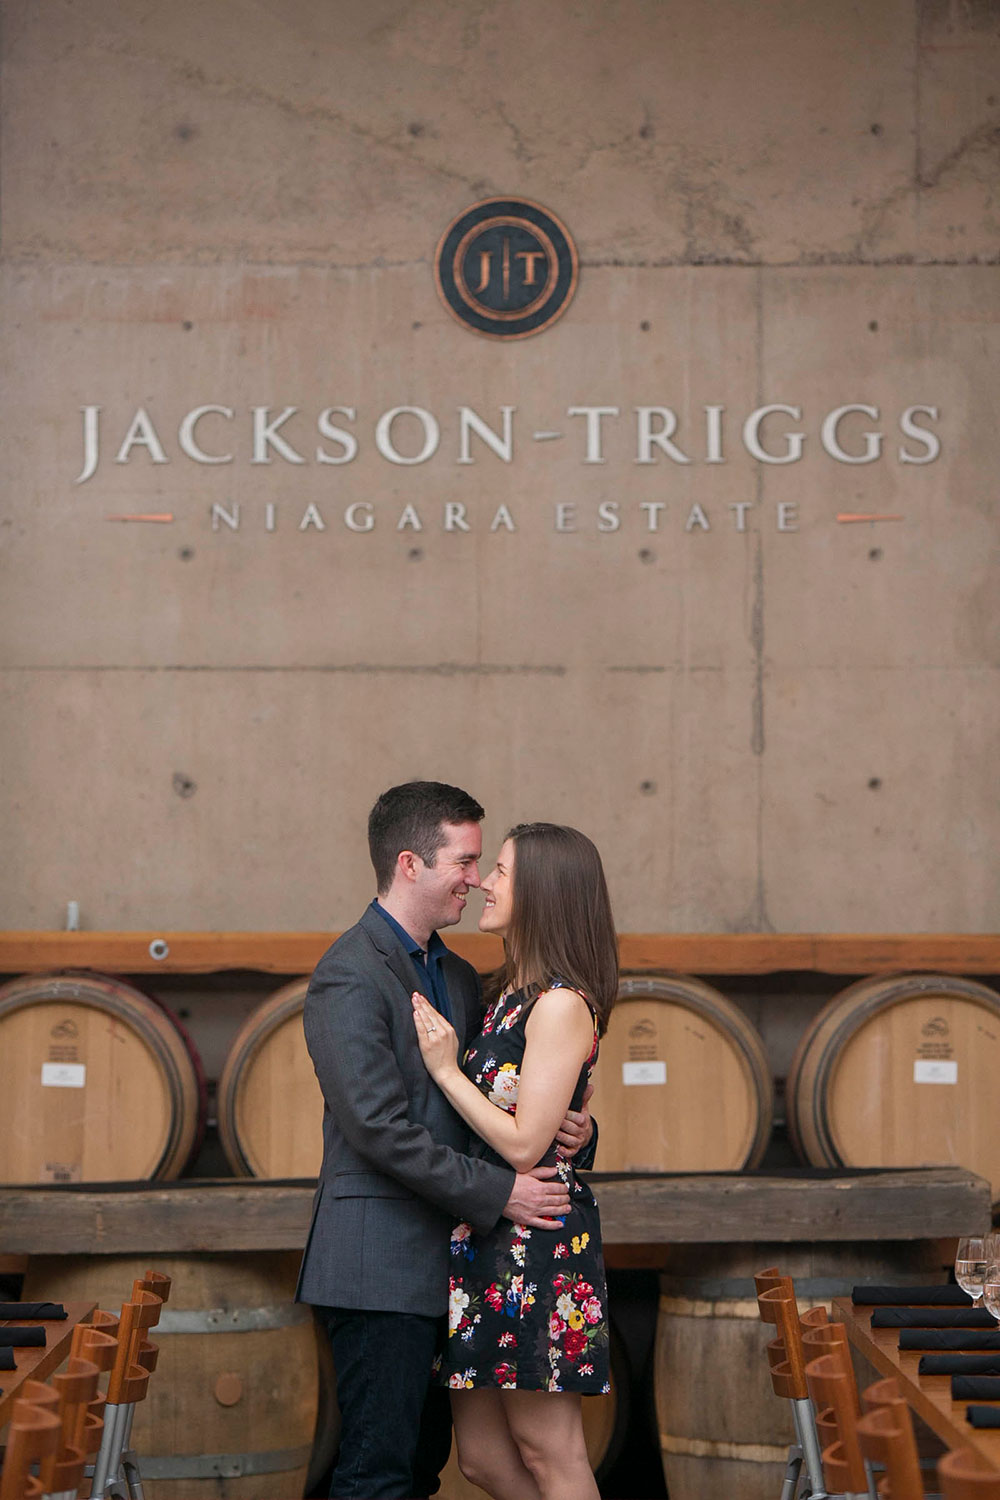 Niagara-on-the-Lake-proposals-Jackson-Triggs-Winery-photo-by-philosophy-studios-021.JPG